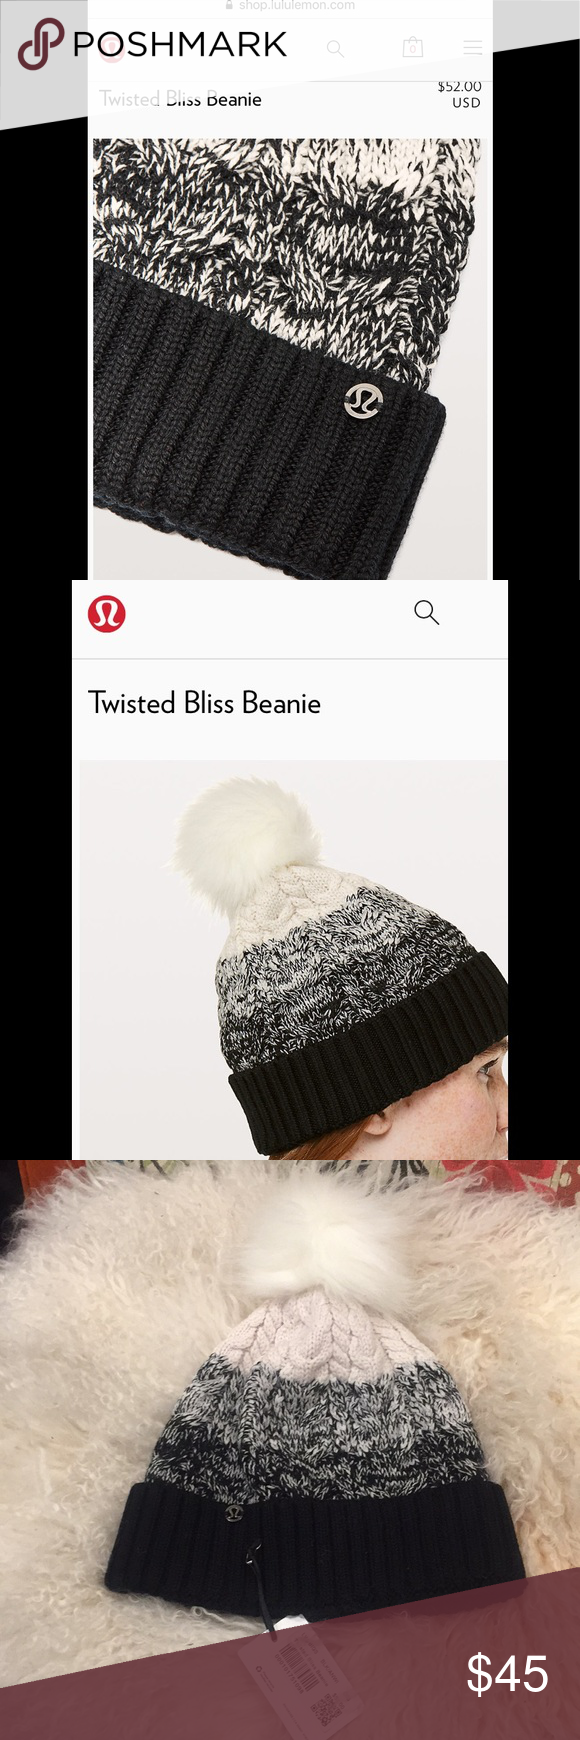 49d27ea16acac Lululemon twisted bliss beanie small Lululemon Twisted bliss Beanie  lululemon athletica Accessories Hats